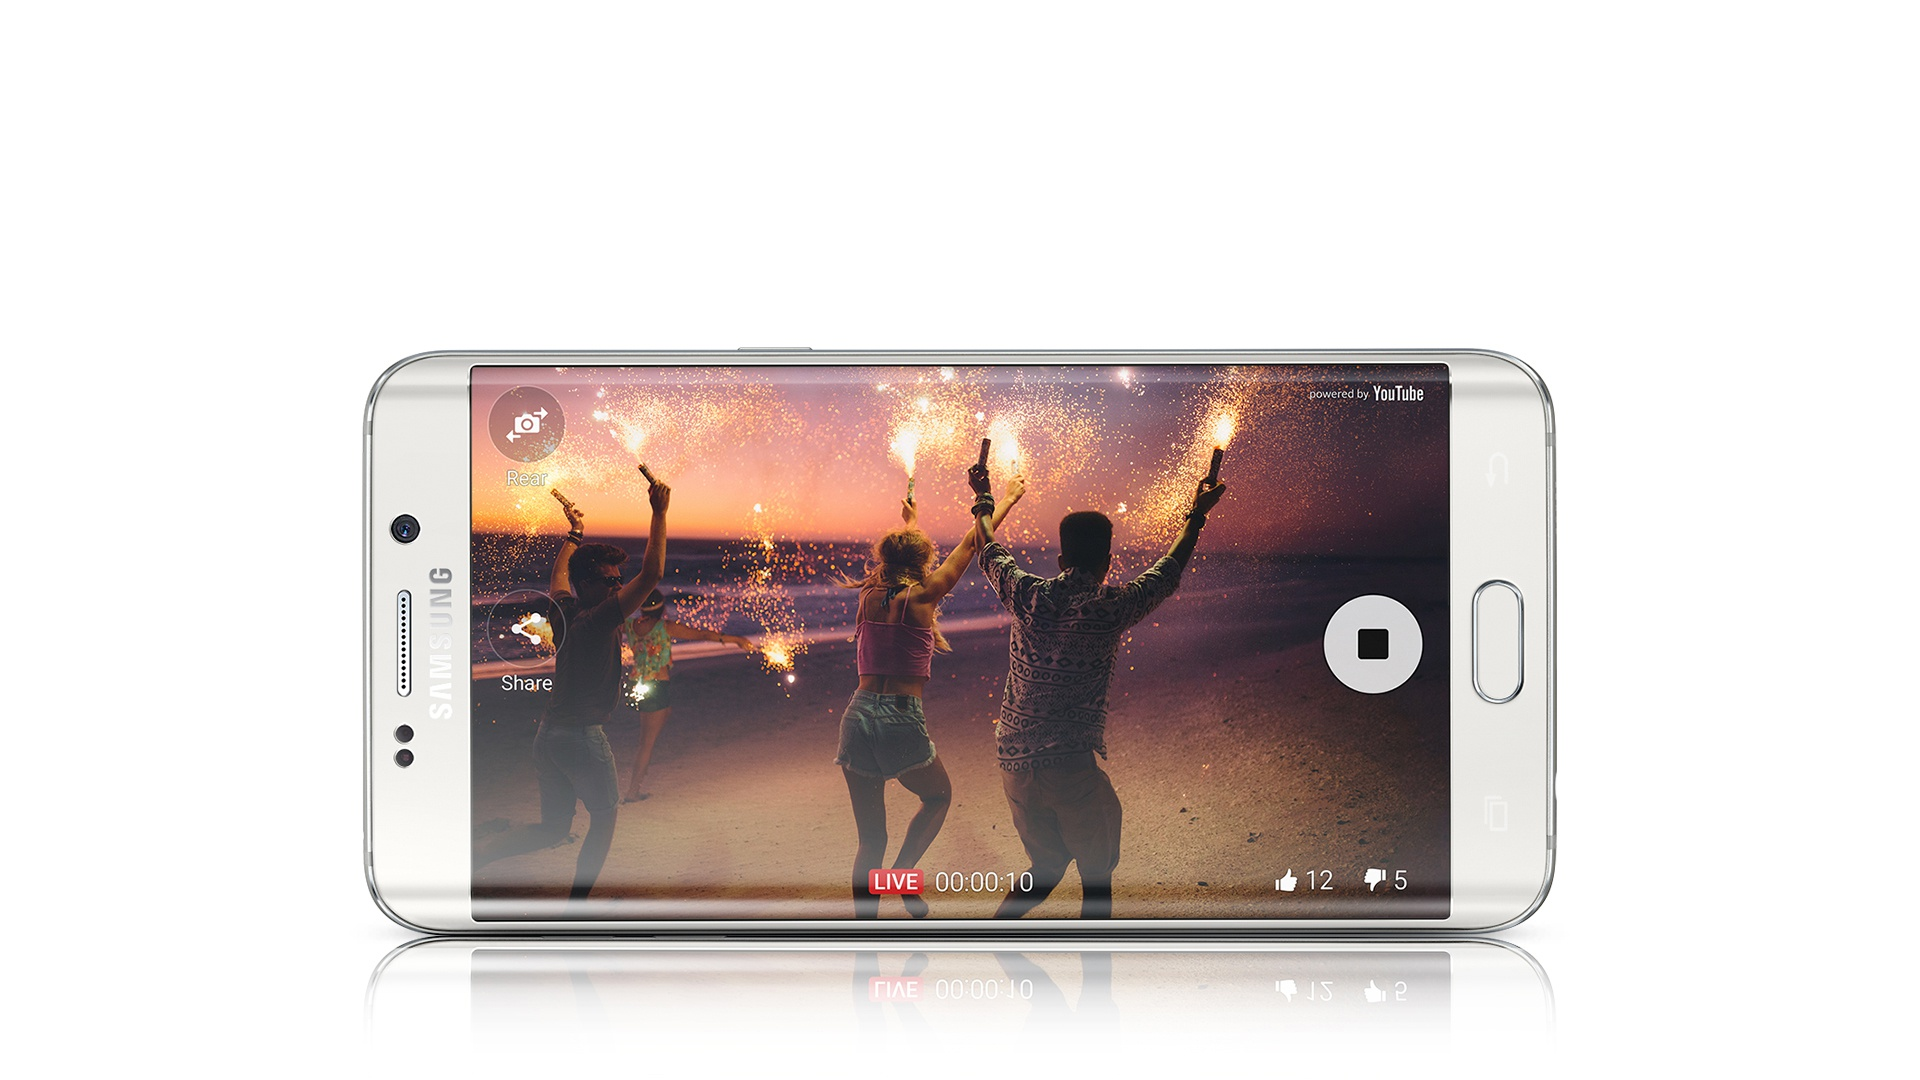 galaxy-s6-edge+_entertainment_share-real-time